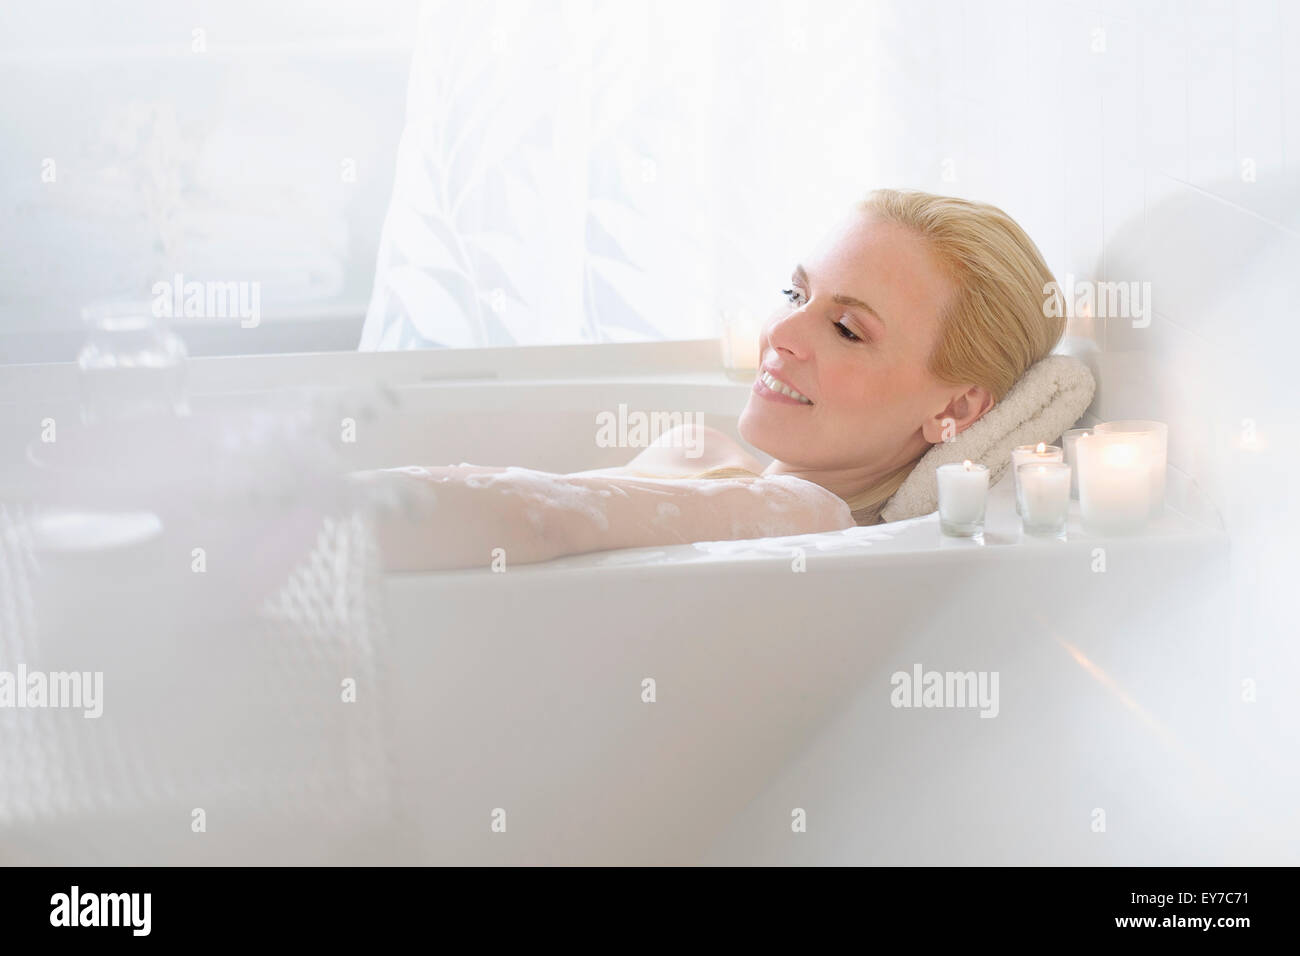 Woman relaxing in bath - Stock Image